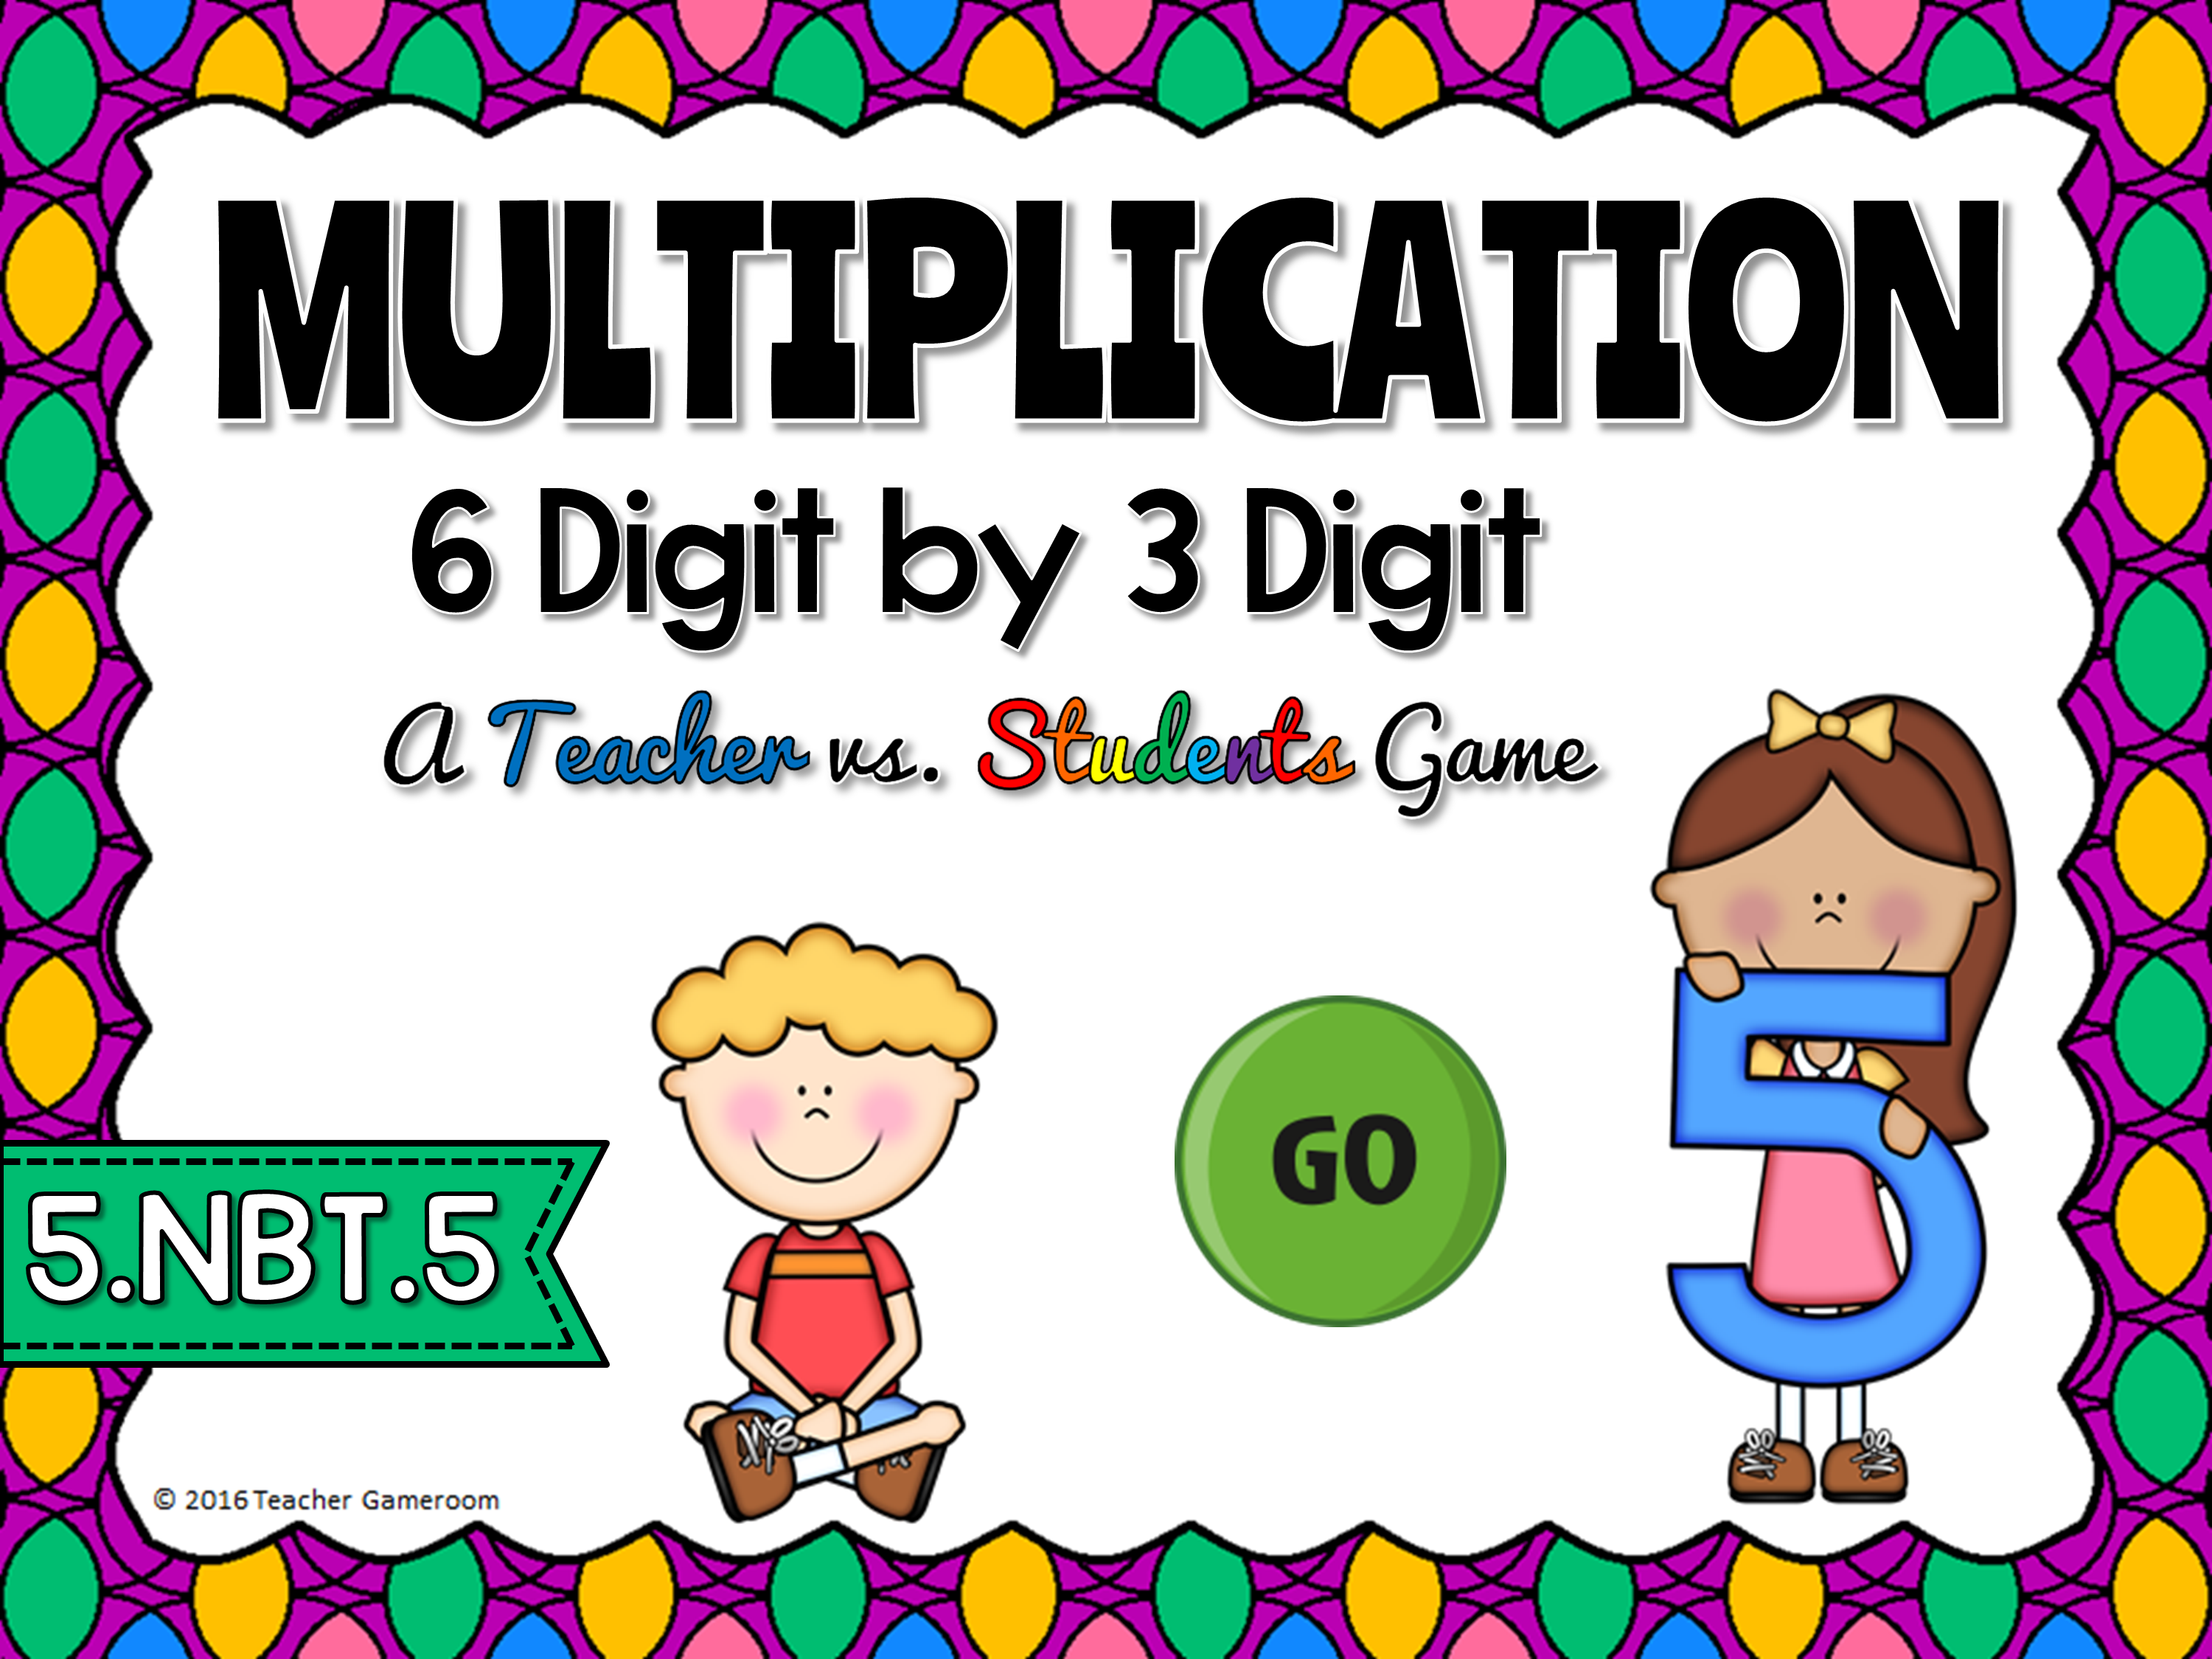 Multiplication 6 Digit by 3 Digit Game